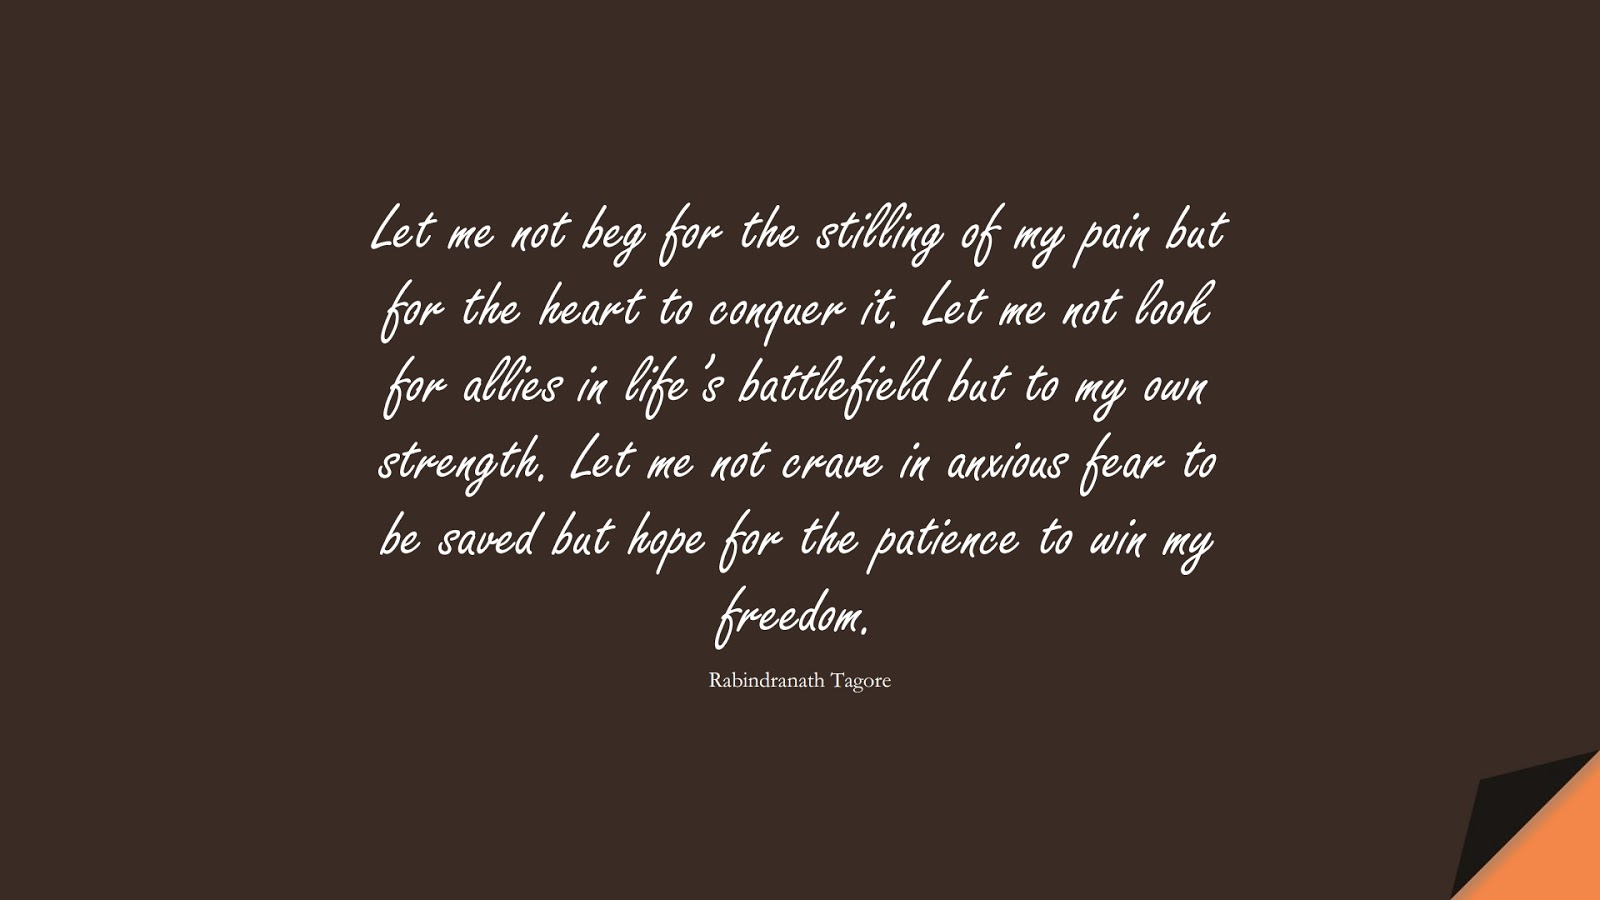 Let me not beg for the stilling of my pain but for the heart to conquer it. Let me not look for allies in life's battlefield but to my own strength. Let me not crave in anxious fear to be saved but hope for the patience to win my freedom. (Rabindranath Tagore);  #FearQuotes